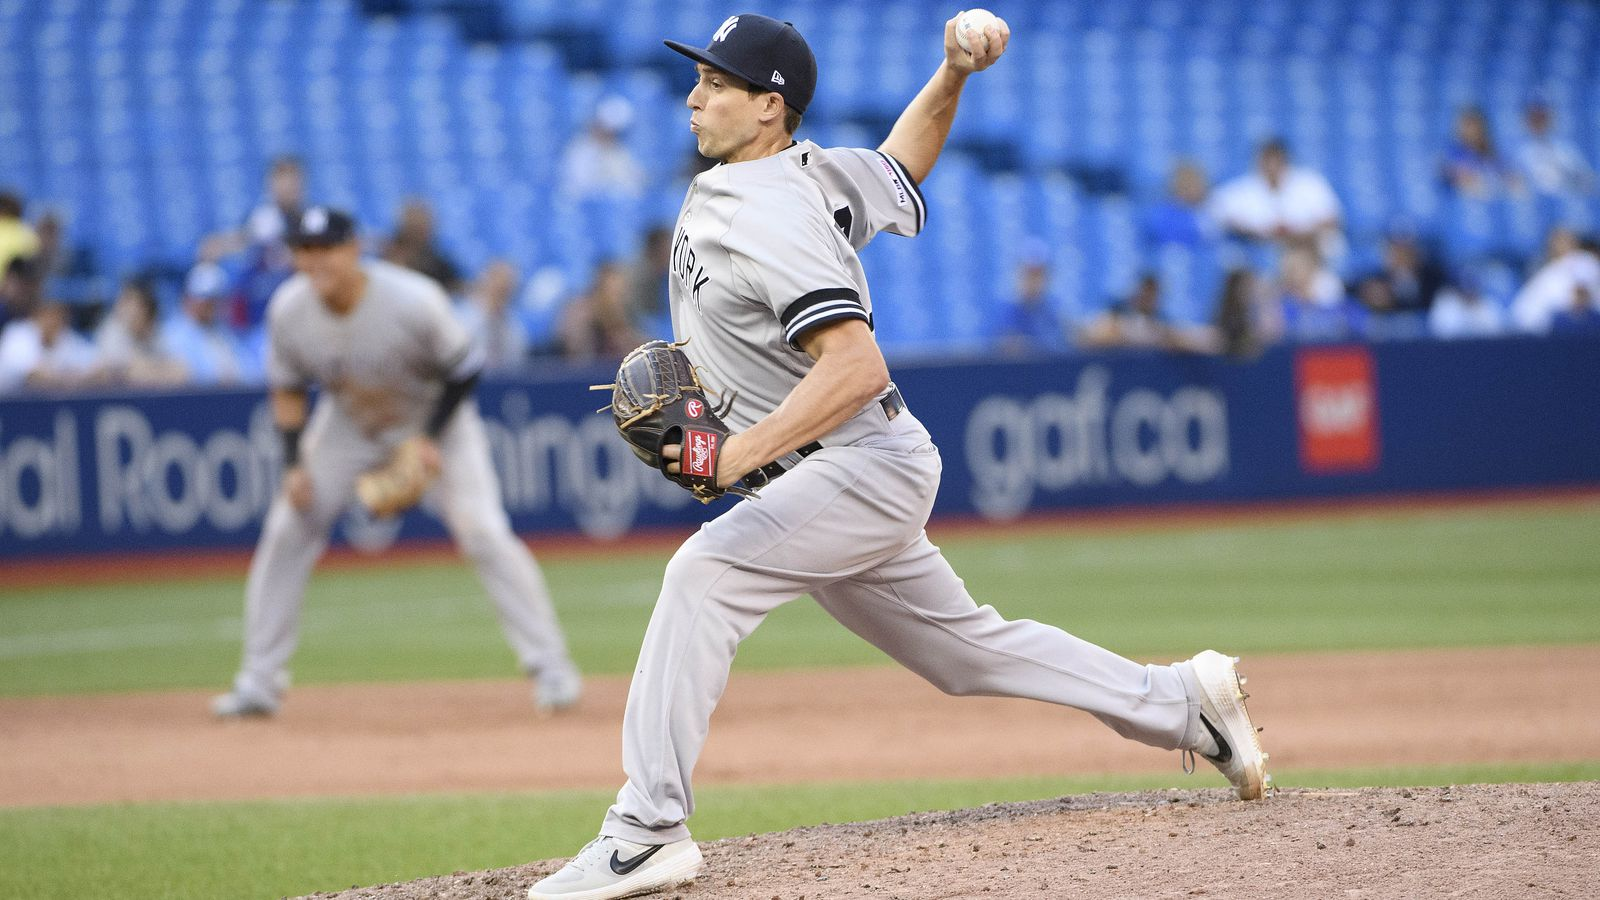 Yankees DFA Ryan Dull amidst flurry of roster moves